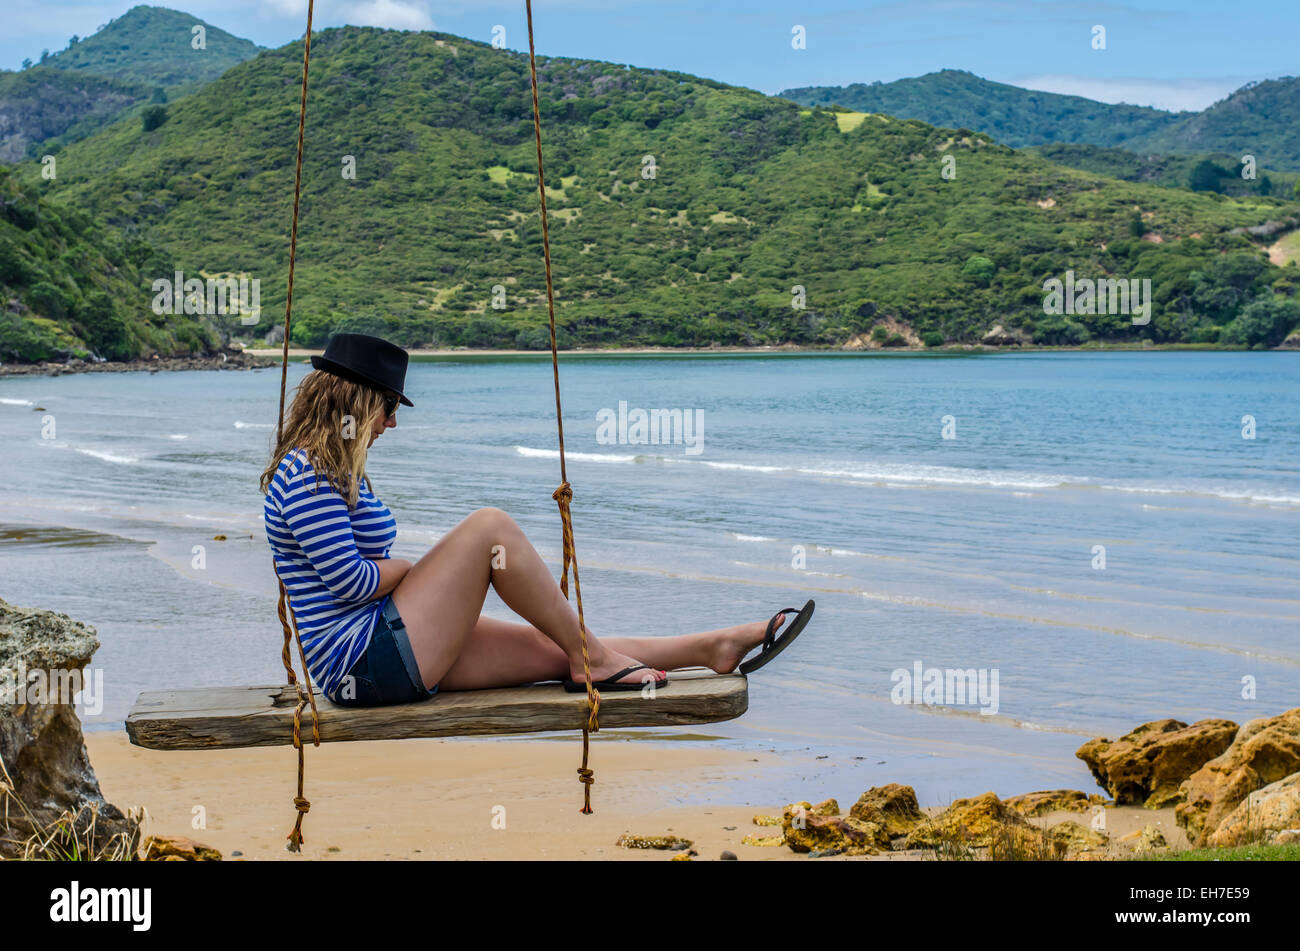 clear, clothes, clothing, company, crossed, crossing, day, distance, expanse, environment, feet, foot, footwear, famous, hat, swing, seascape, peacefu Stock Photo